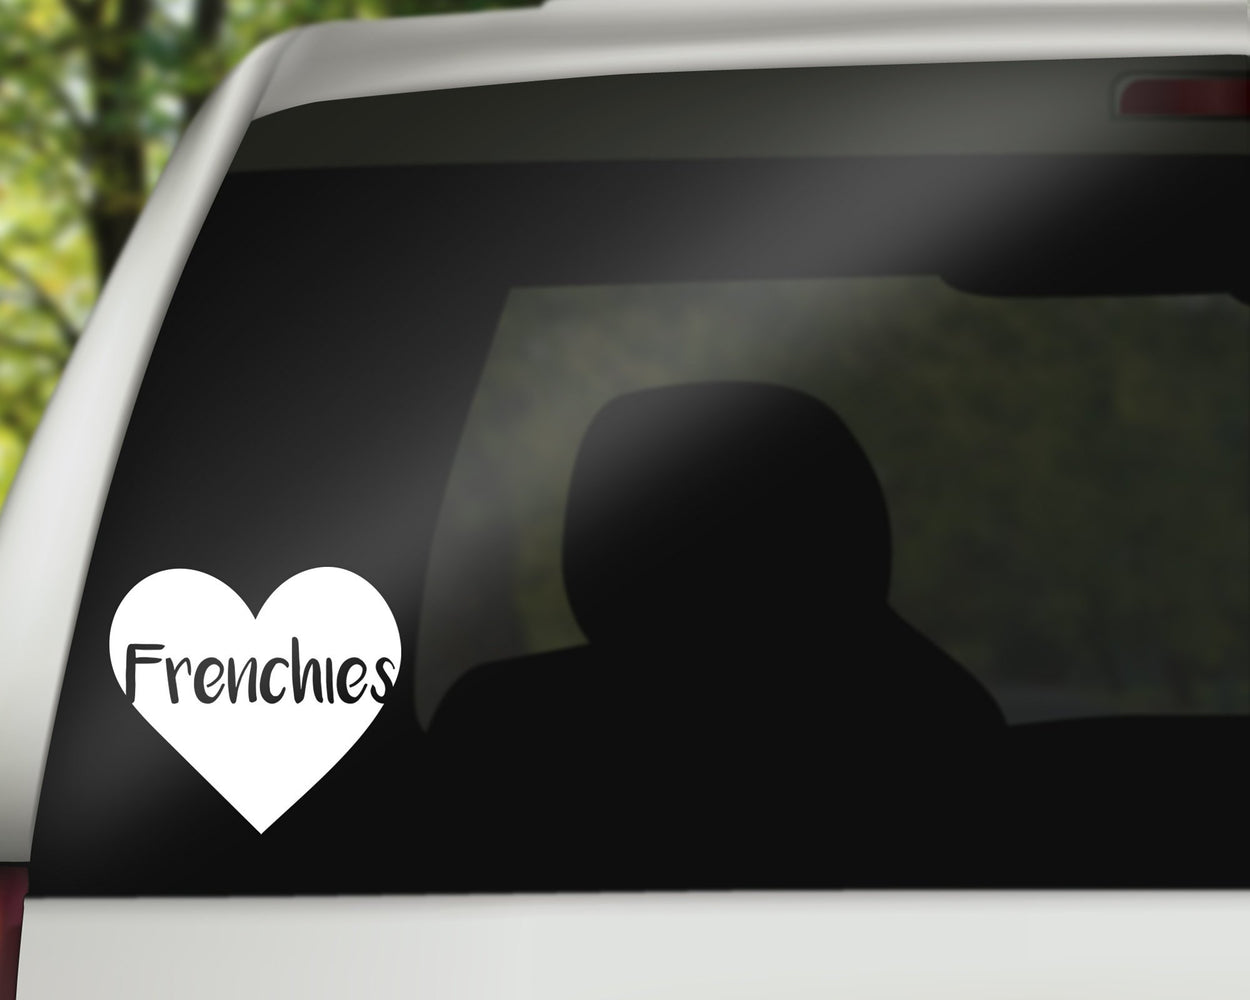 Frenchies Heart Decal, Car Decals, pyaonline